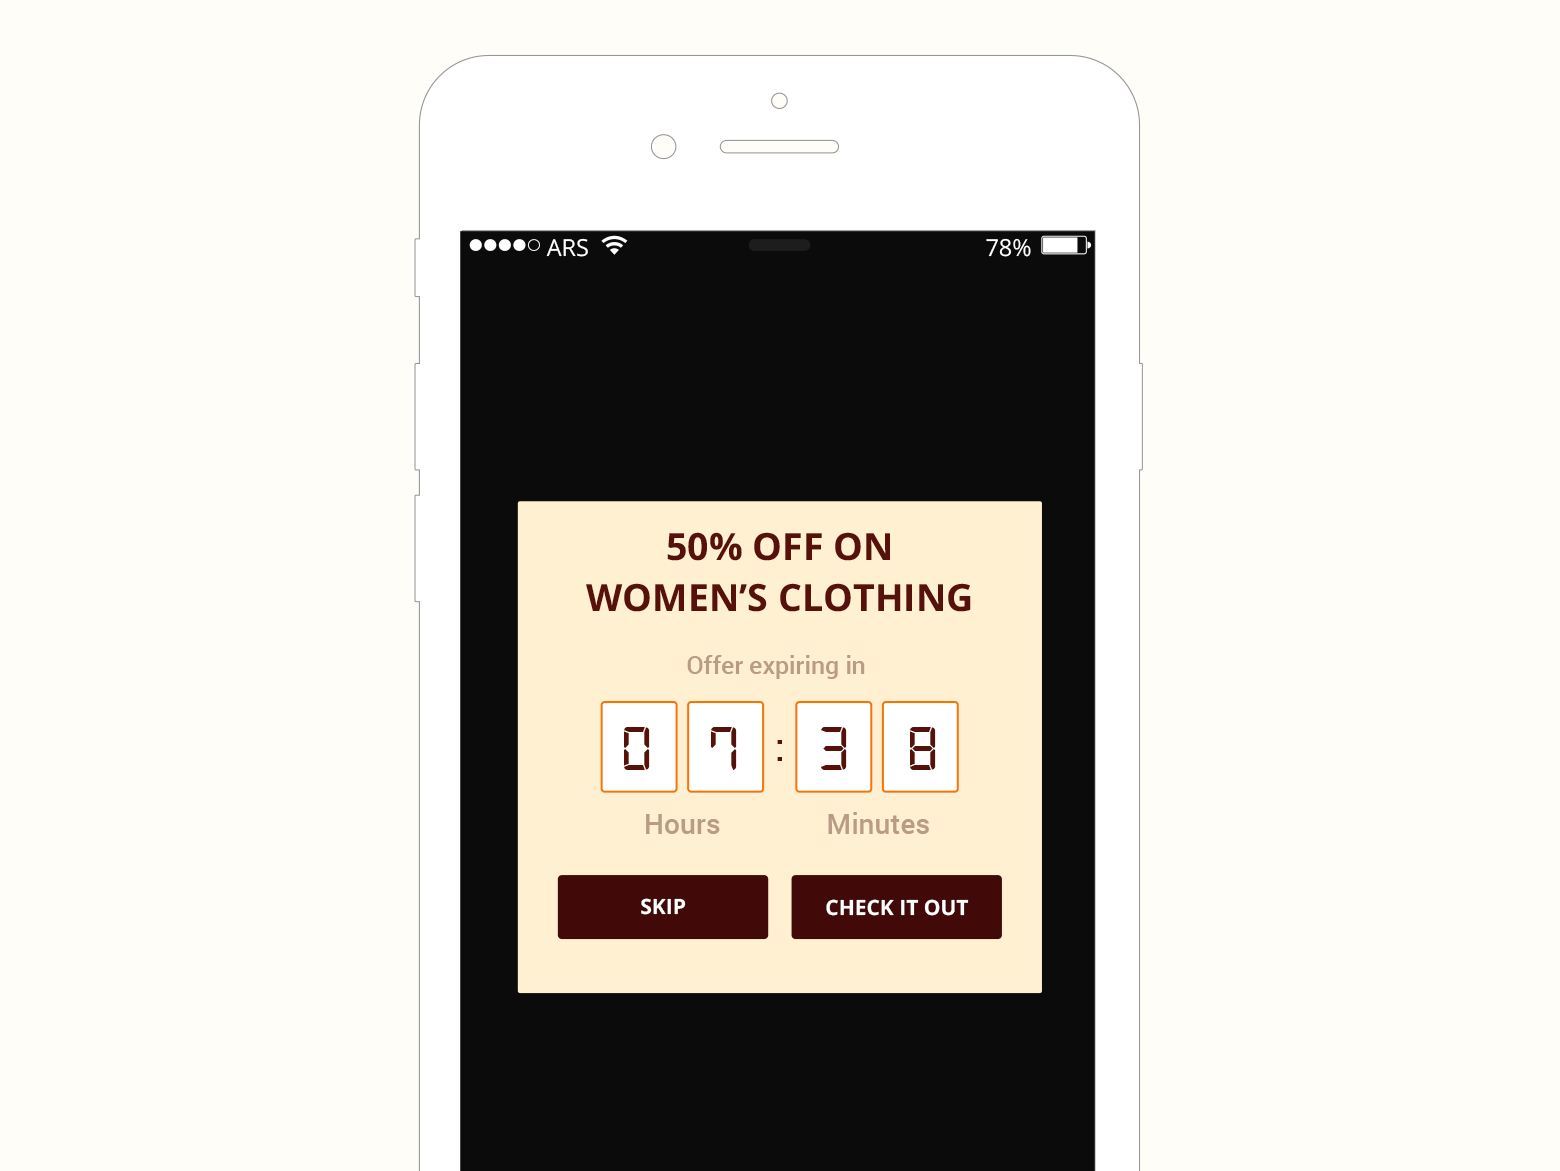 consider testing a message that adds urgency when sending special offers or discounts.